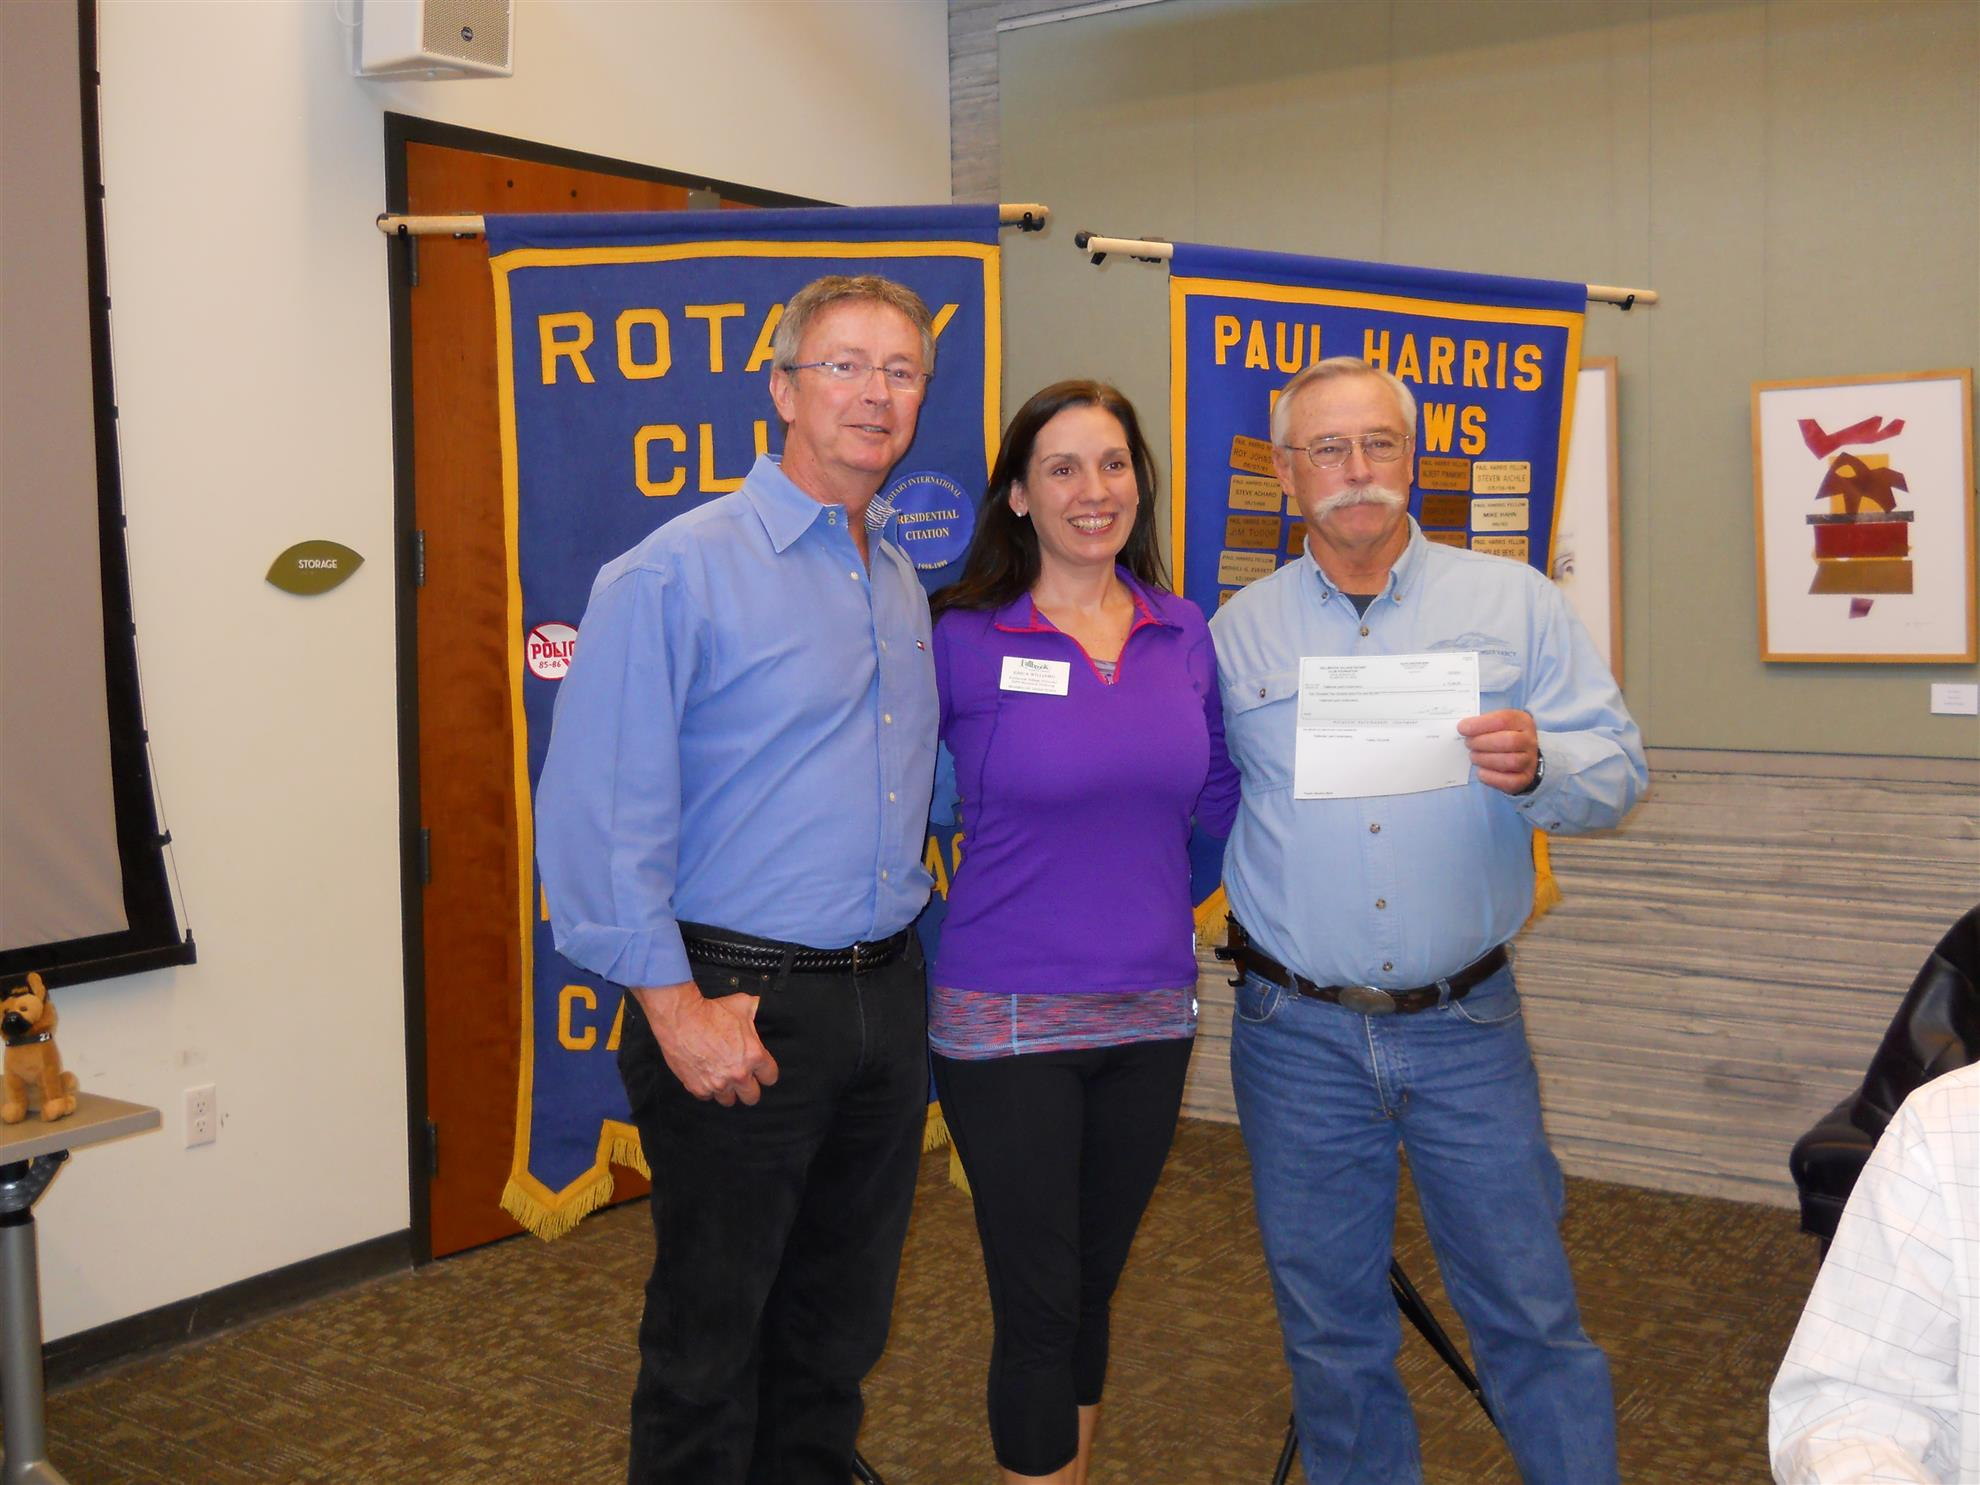 fallbrook land conservancy presented donation 1 26 16 erica williams presented a check for 2265 to fallbrook land conservancy representatives william shakespeare and mike peters the money was raised during